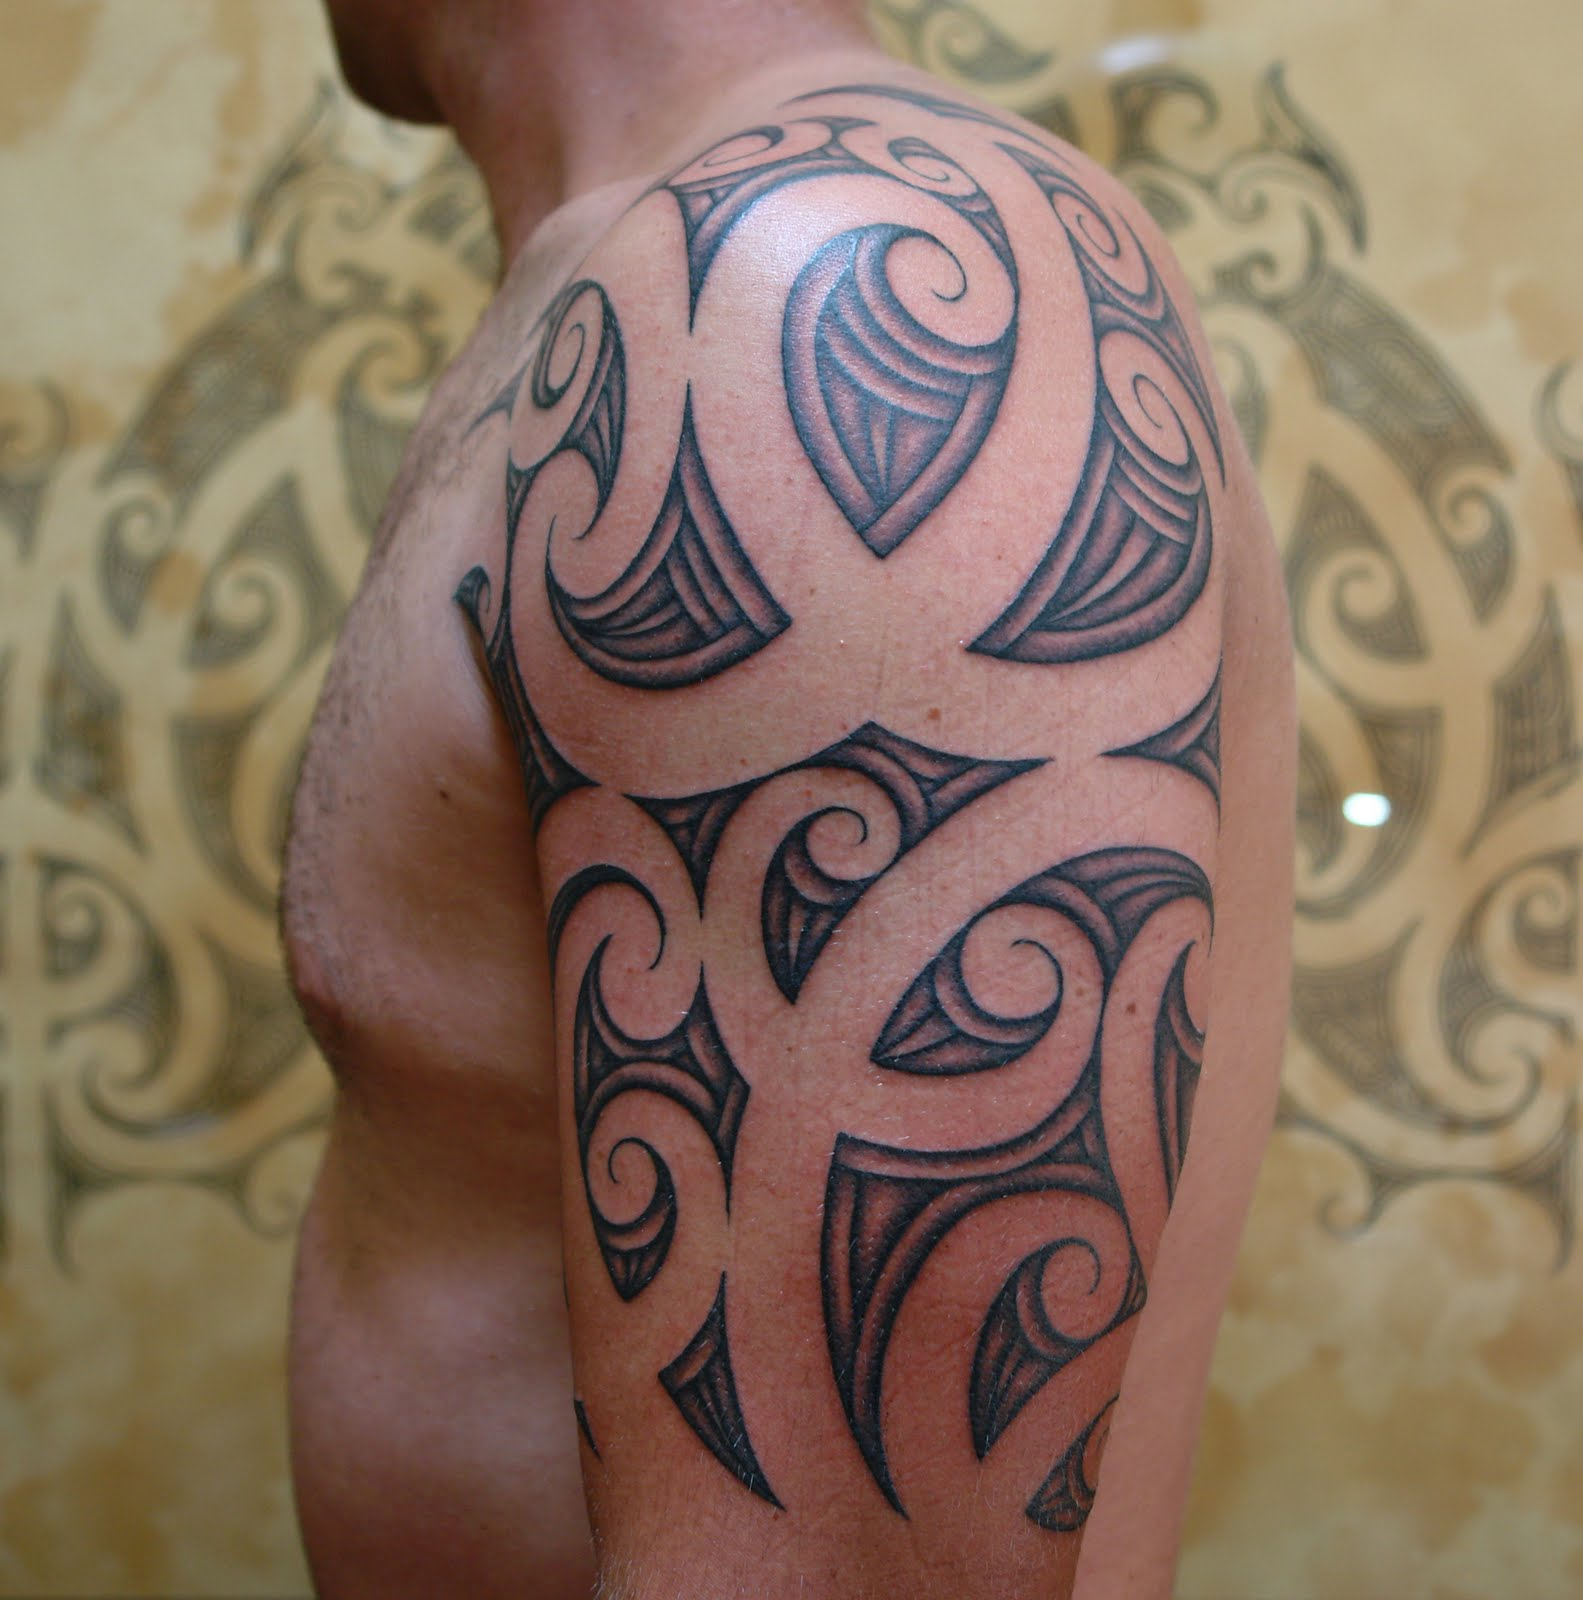 maori polynesian tattoo maori half sleeve tattoo. Black Bedroom Furniture Sets. Home Design Ideas